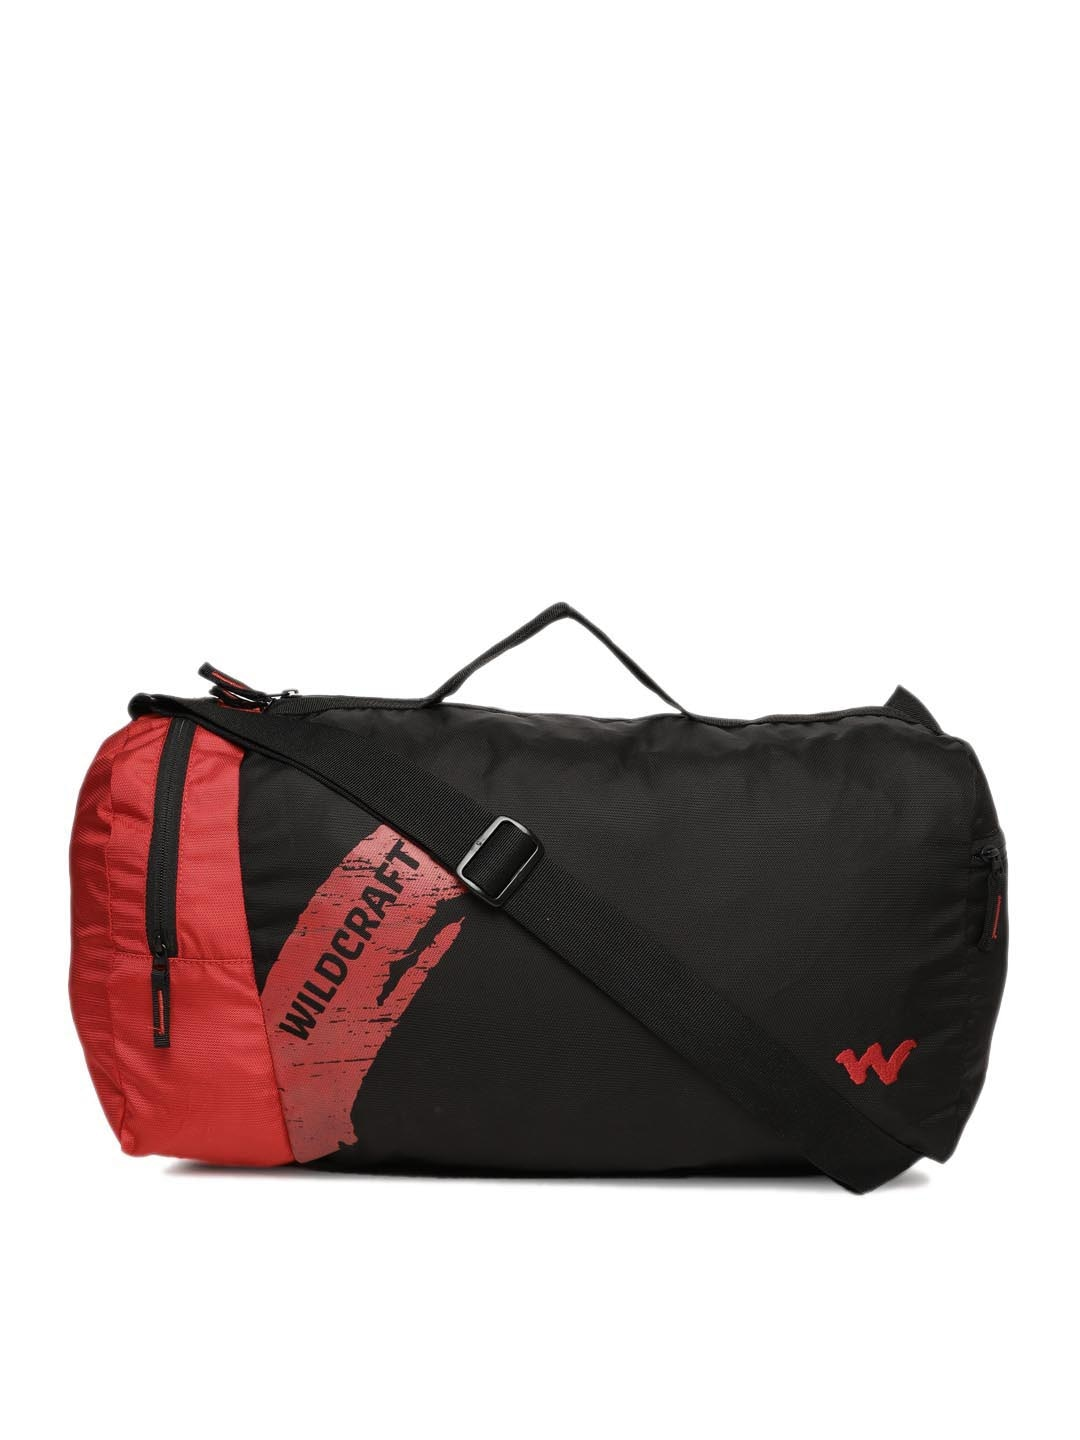 f306cfe382ab Wildcraft Store - Buy Wildcraft Products Online in India